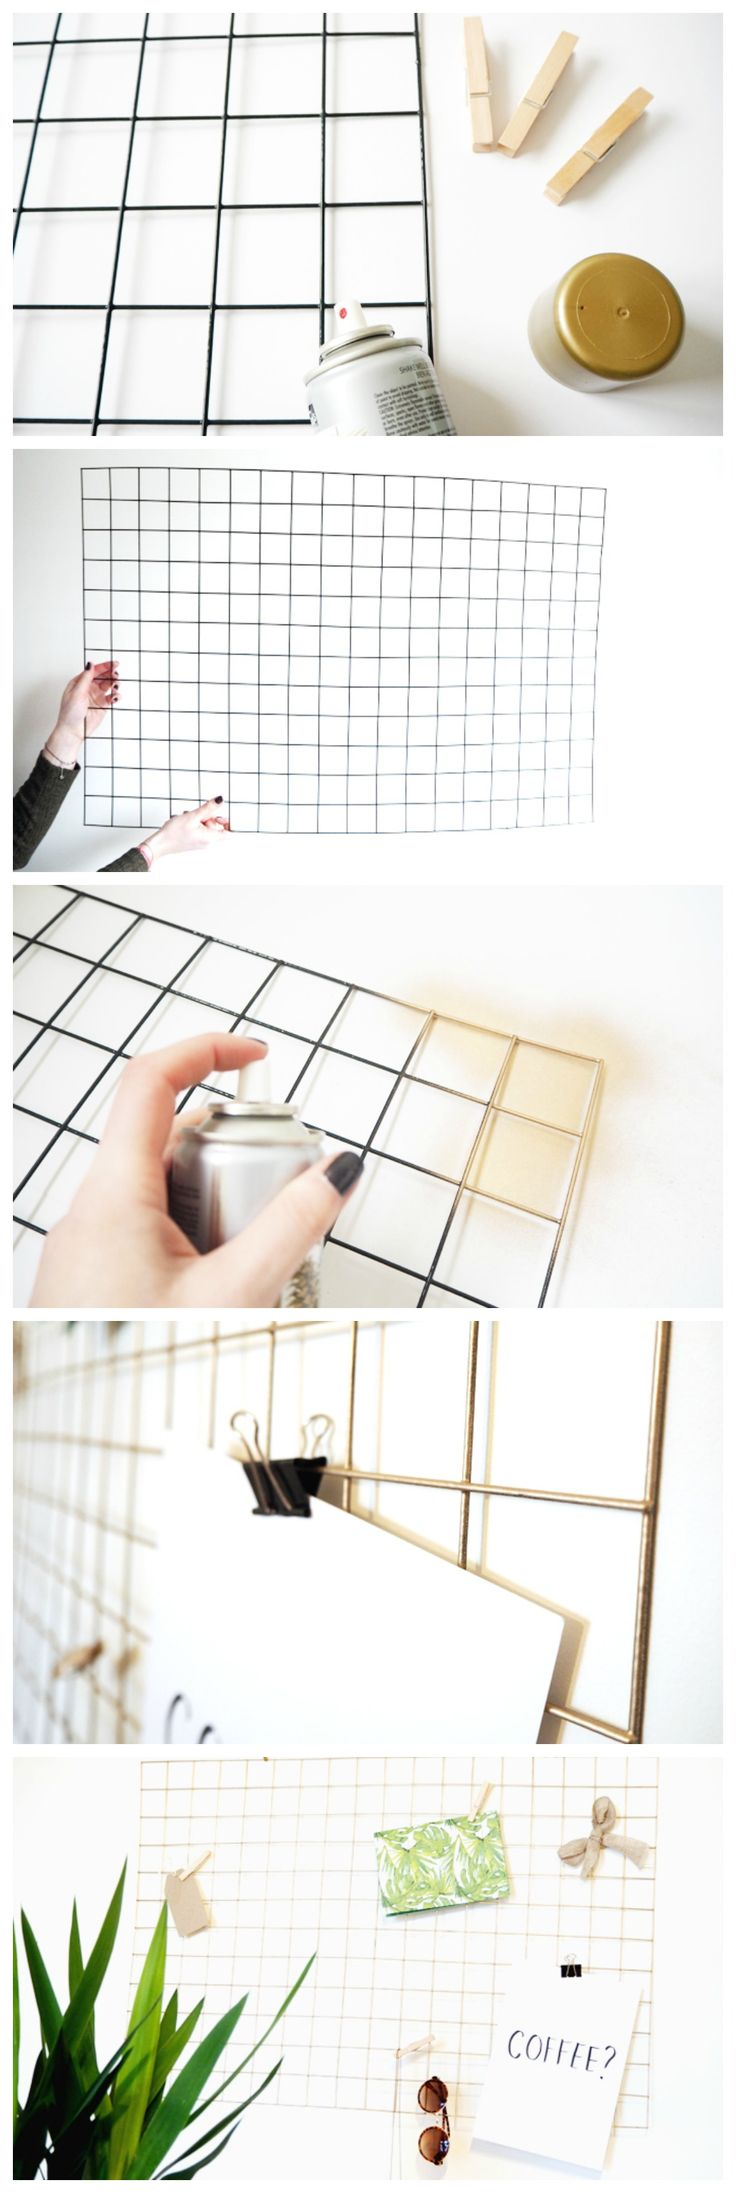 "How To Make a DIY Gold Wire Memo Board | Tutorial. The mesh is also called a ""Galvanized Mesh Panel"" or a ""PVC Coated Wire Grid"" look for it in gardening. interesting way to change out small woodcuts pinterest // @ninabubblygum"